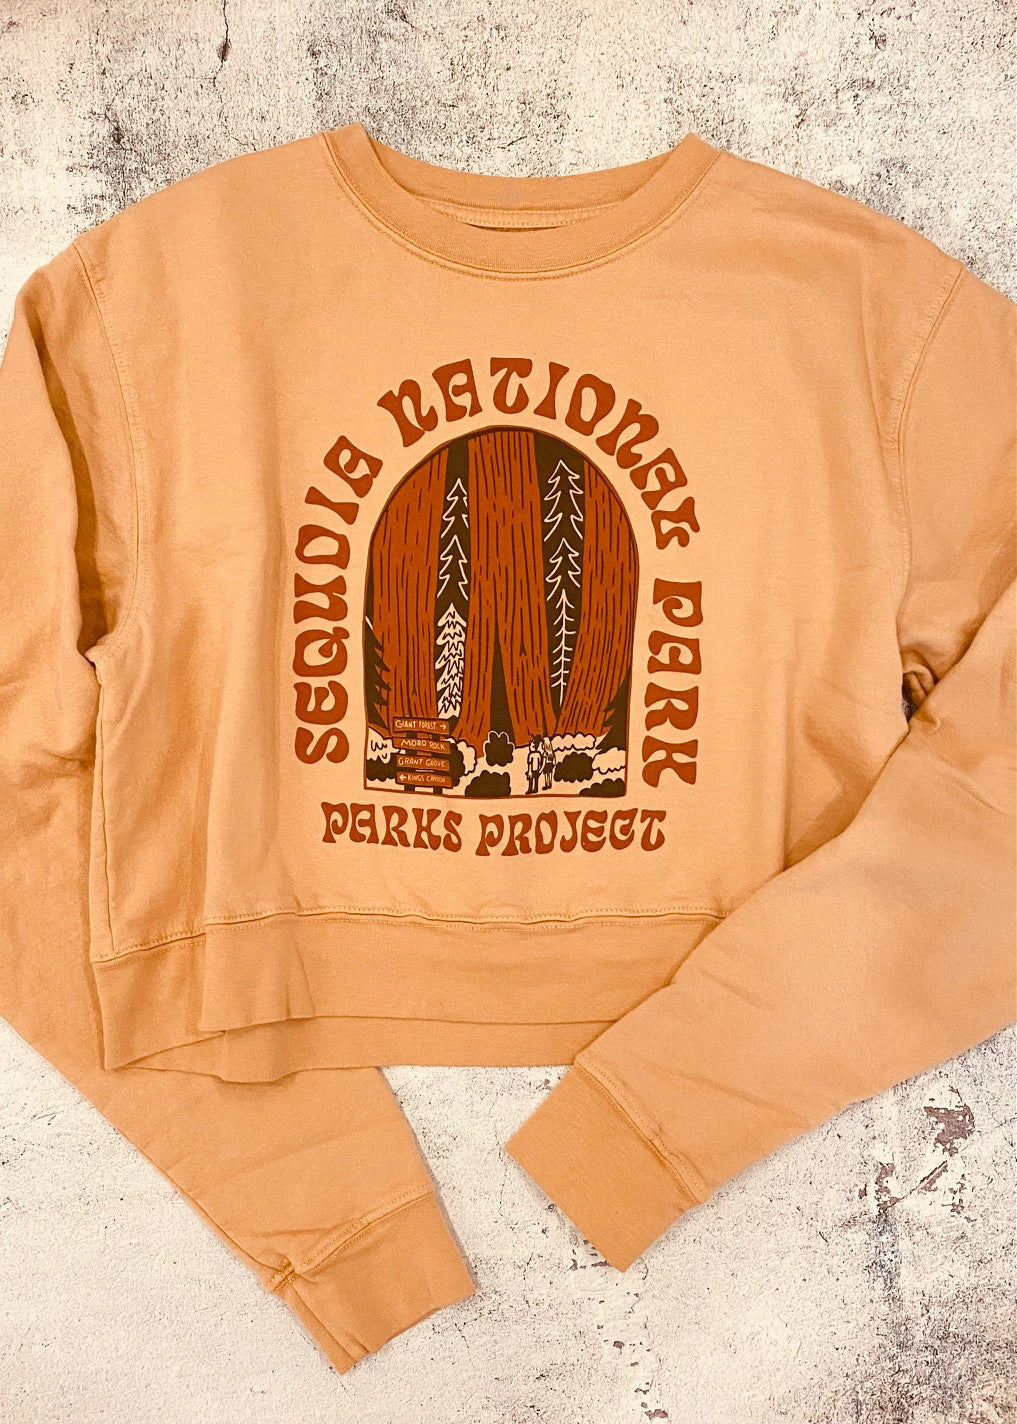 Parks Project Sequoia Admiration Cropped Crew Sweatshirt